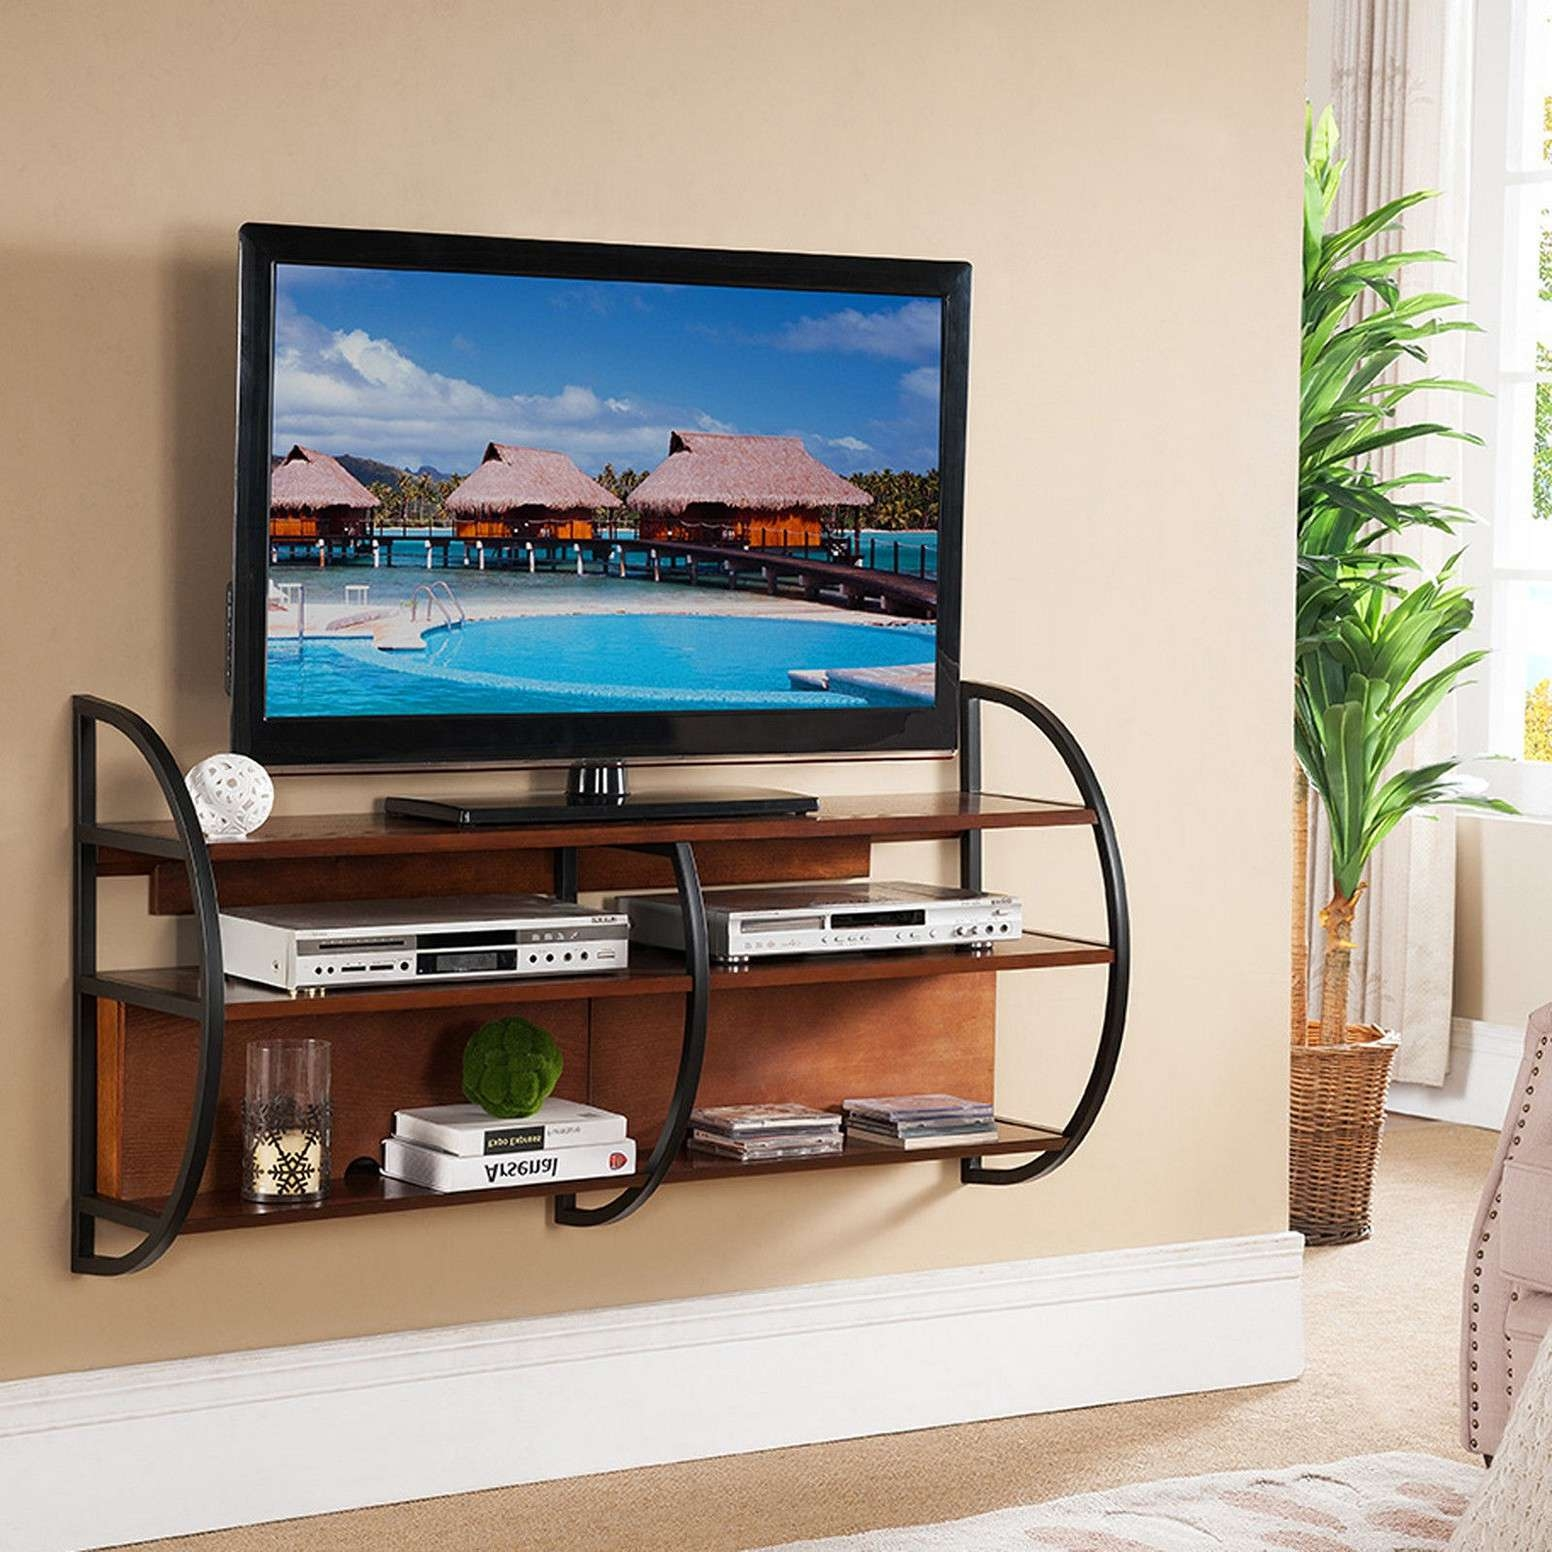 Genial Floating Tv Stand Tv Cabinets Along With Mounted Tv With In Floating Glass Tv Stands (Gallery 14 of 15)